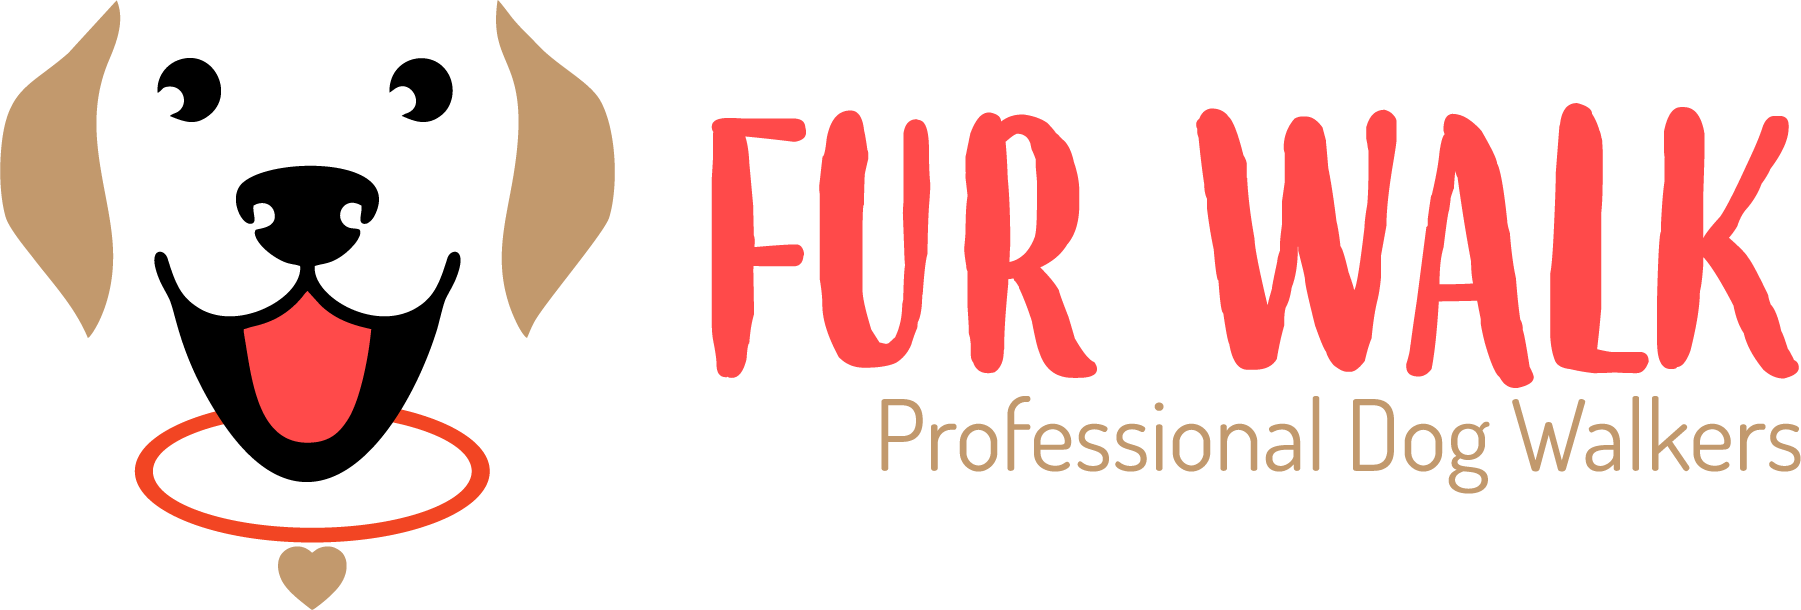 Fur Walk - Professional Dog Walkers